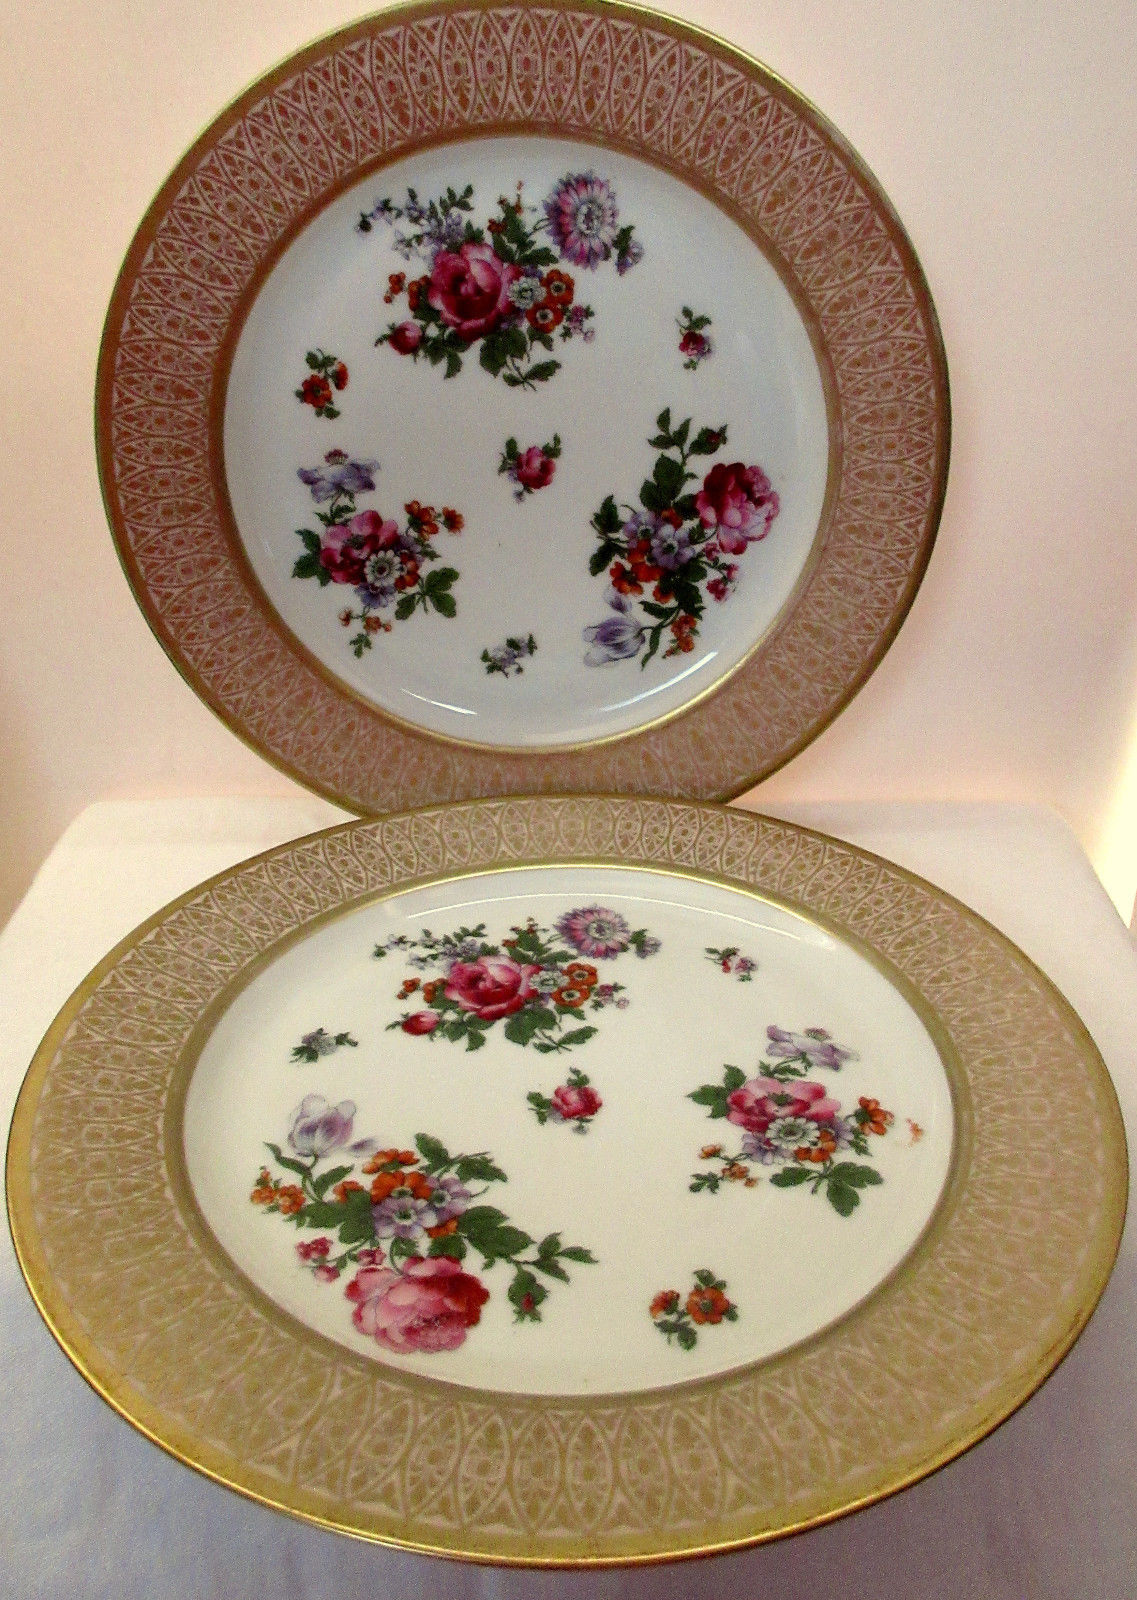 ... Vintage Dinner Plates Two (2) Bavaria P.T. Tirschenreuth Gold Rimmed Floral & Vintage Dinner Plates Two (2) Bavaria P.T. and 18 similar items